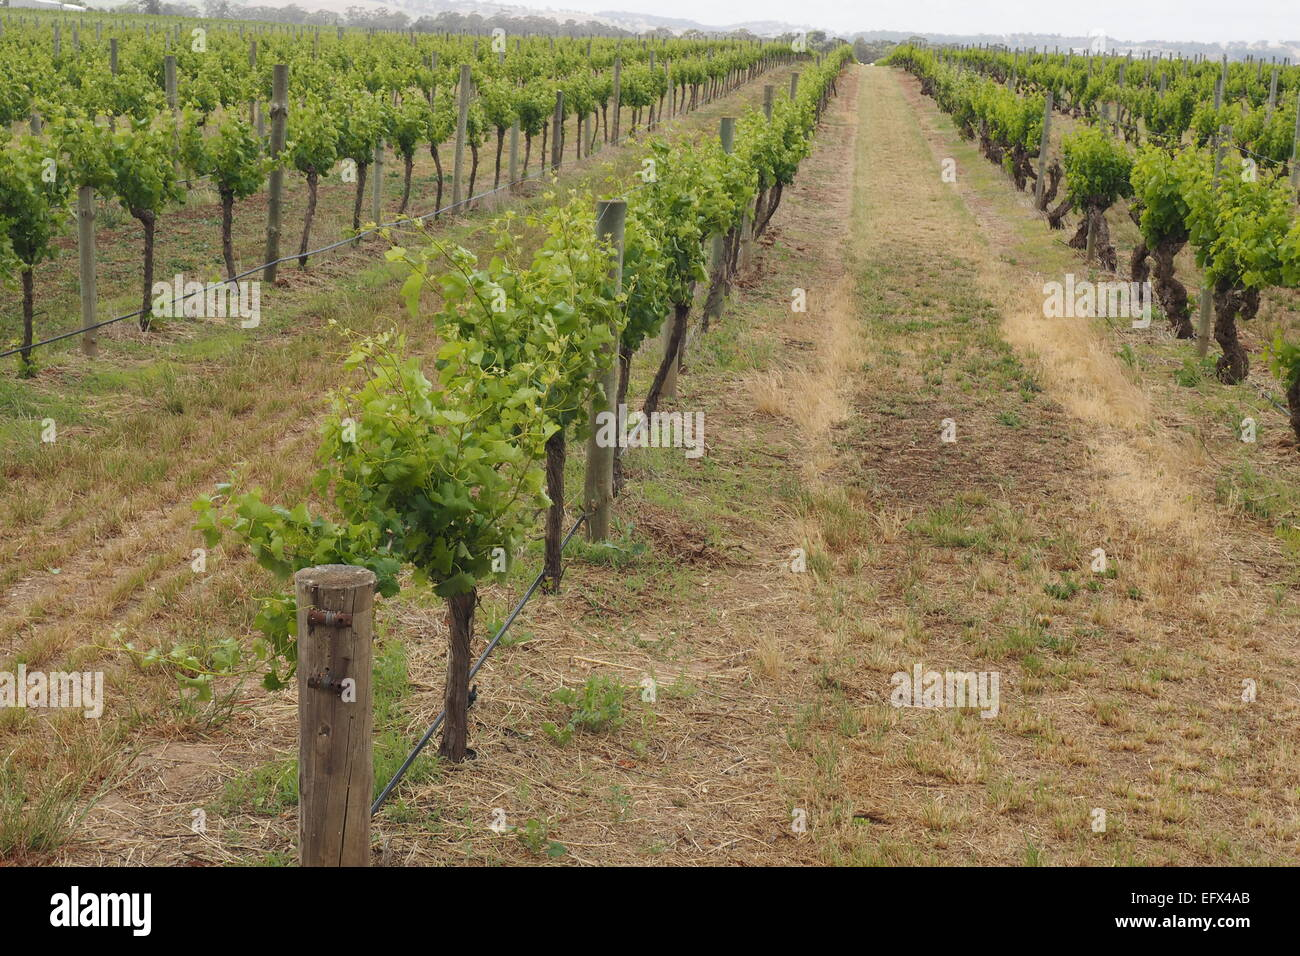 Rows of grapevines in a vineyard. - Stock Image